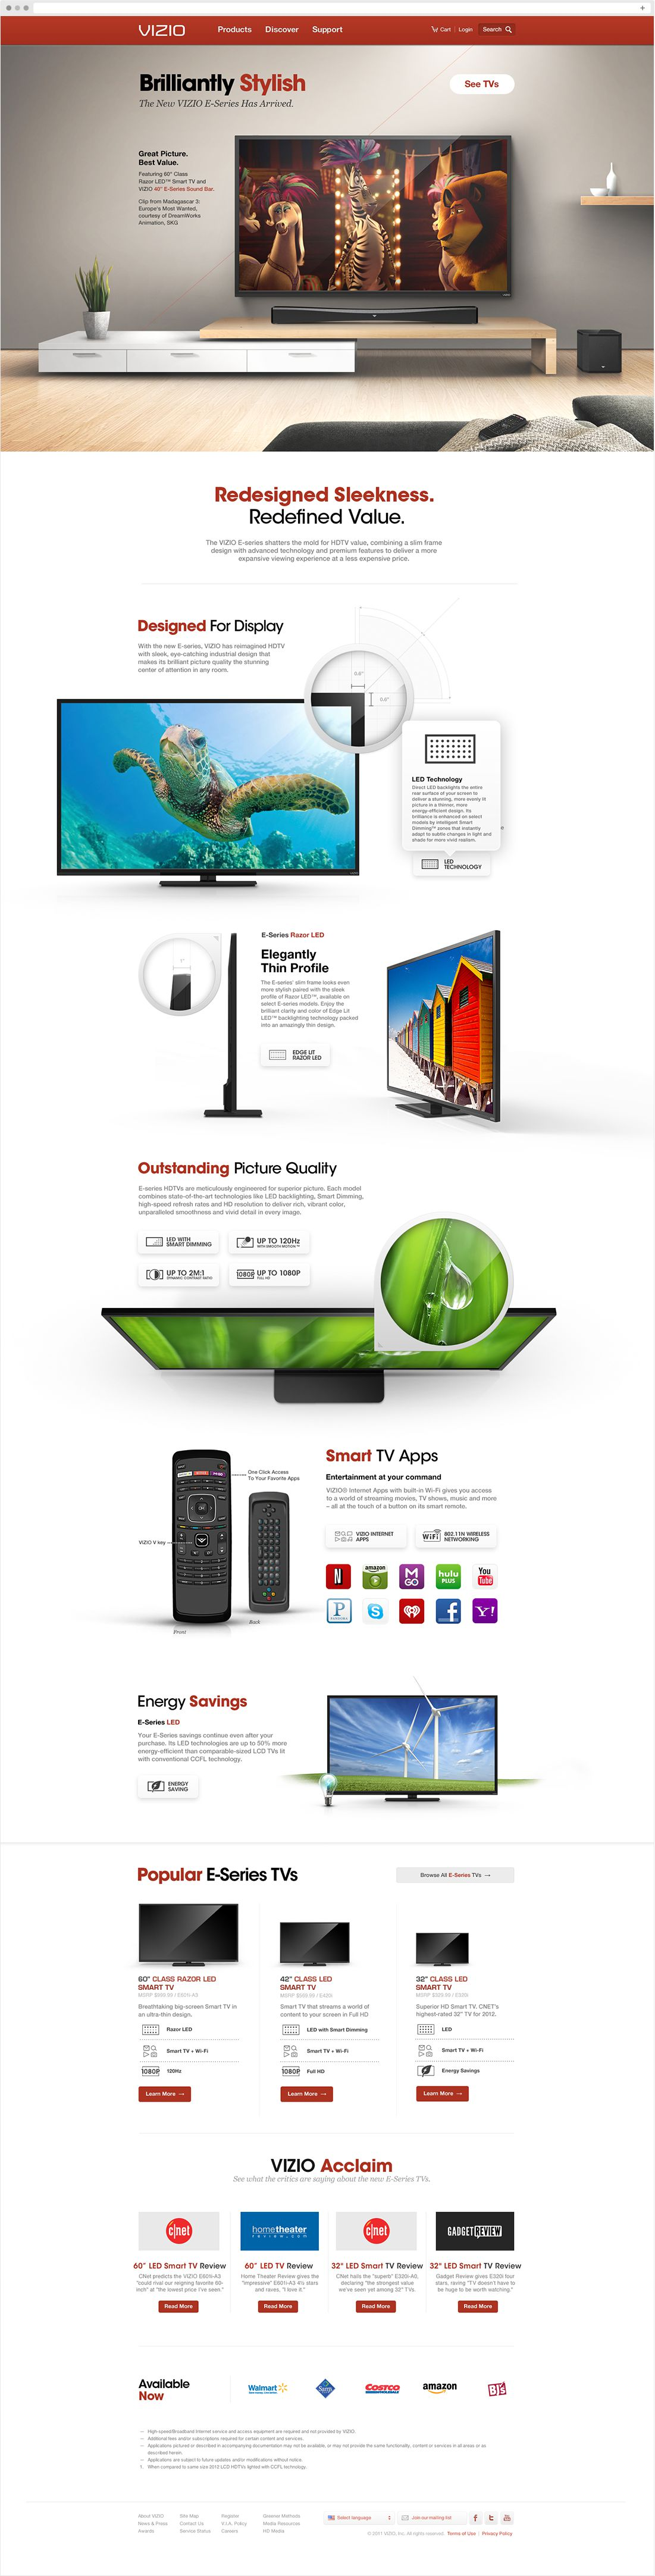 The Anatomy of a VIZIO Product Page